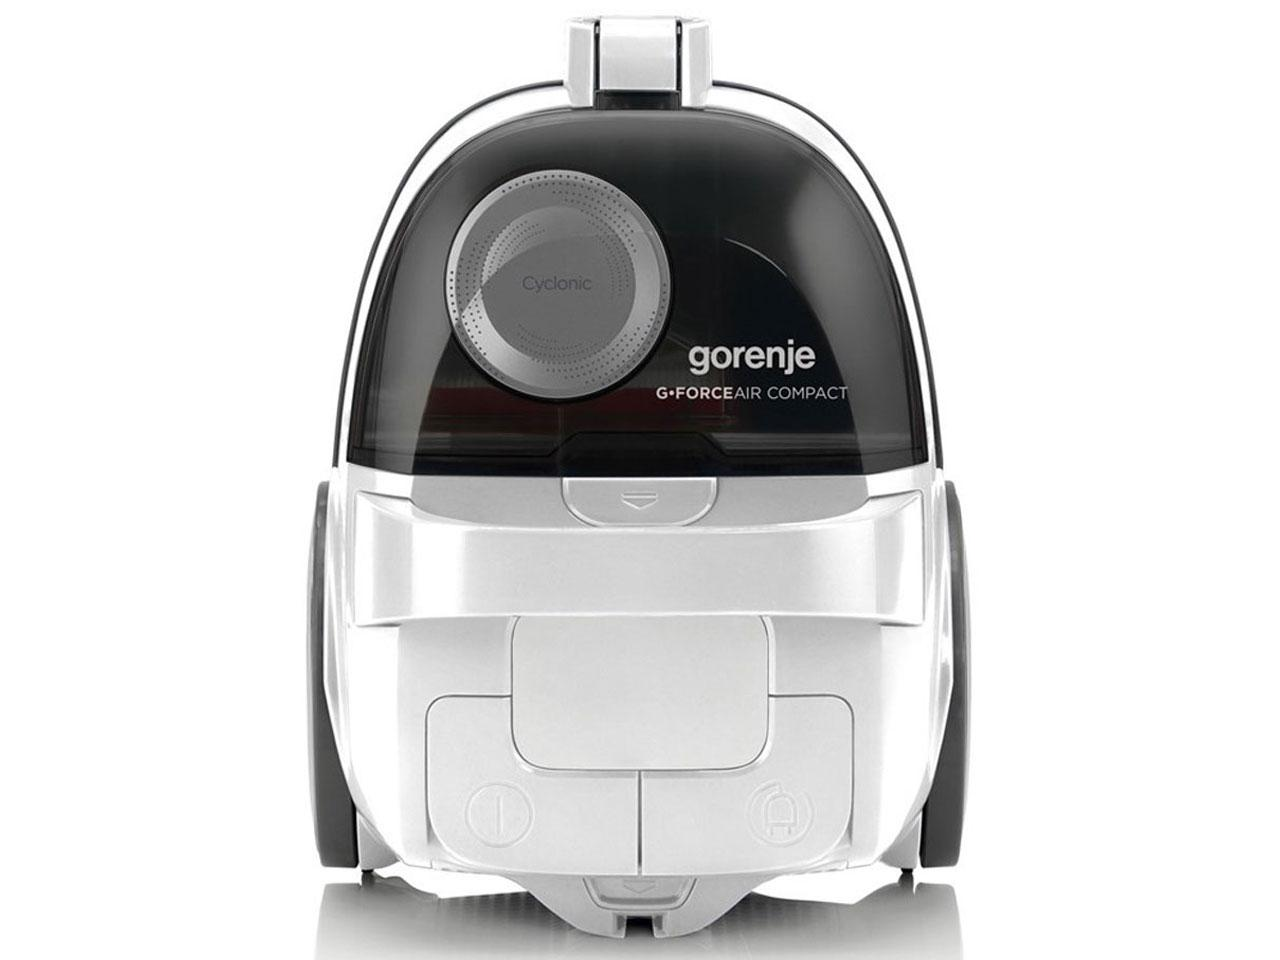 GORENJE VCEA01GACWCY G Force Air Compact